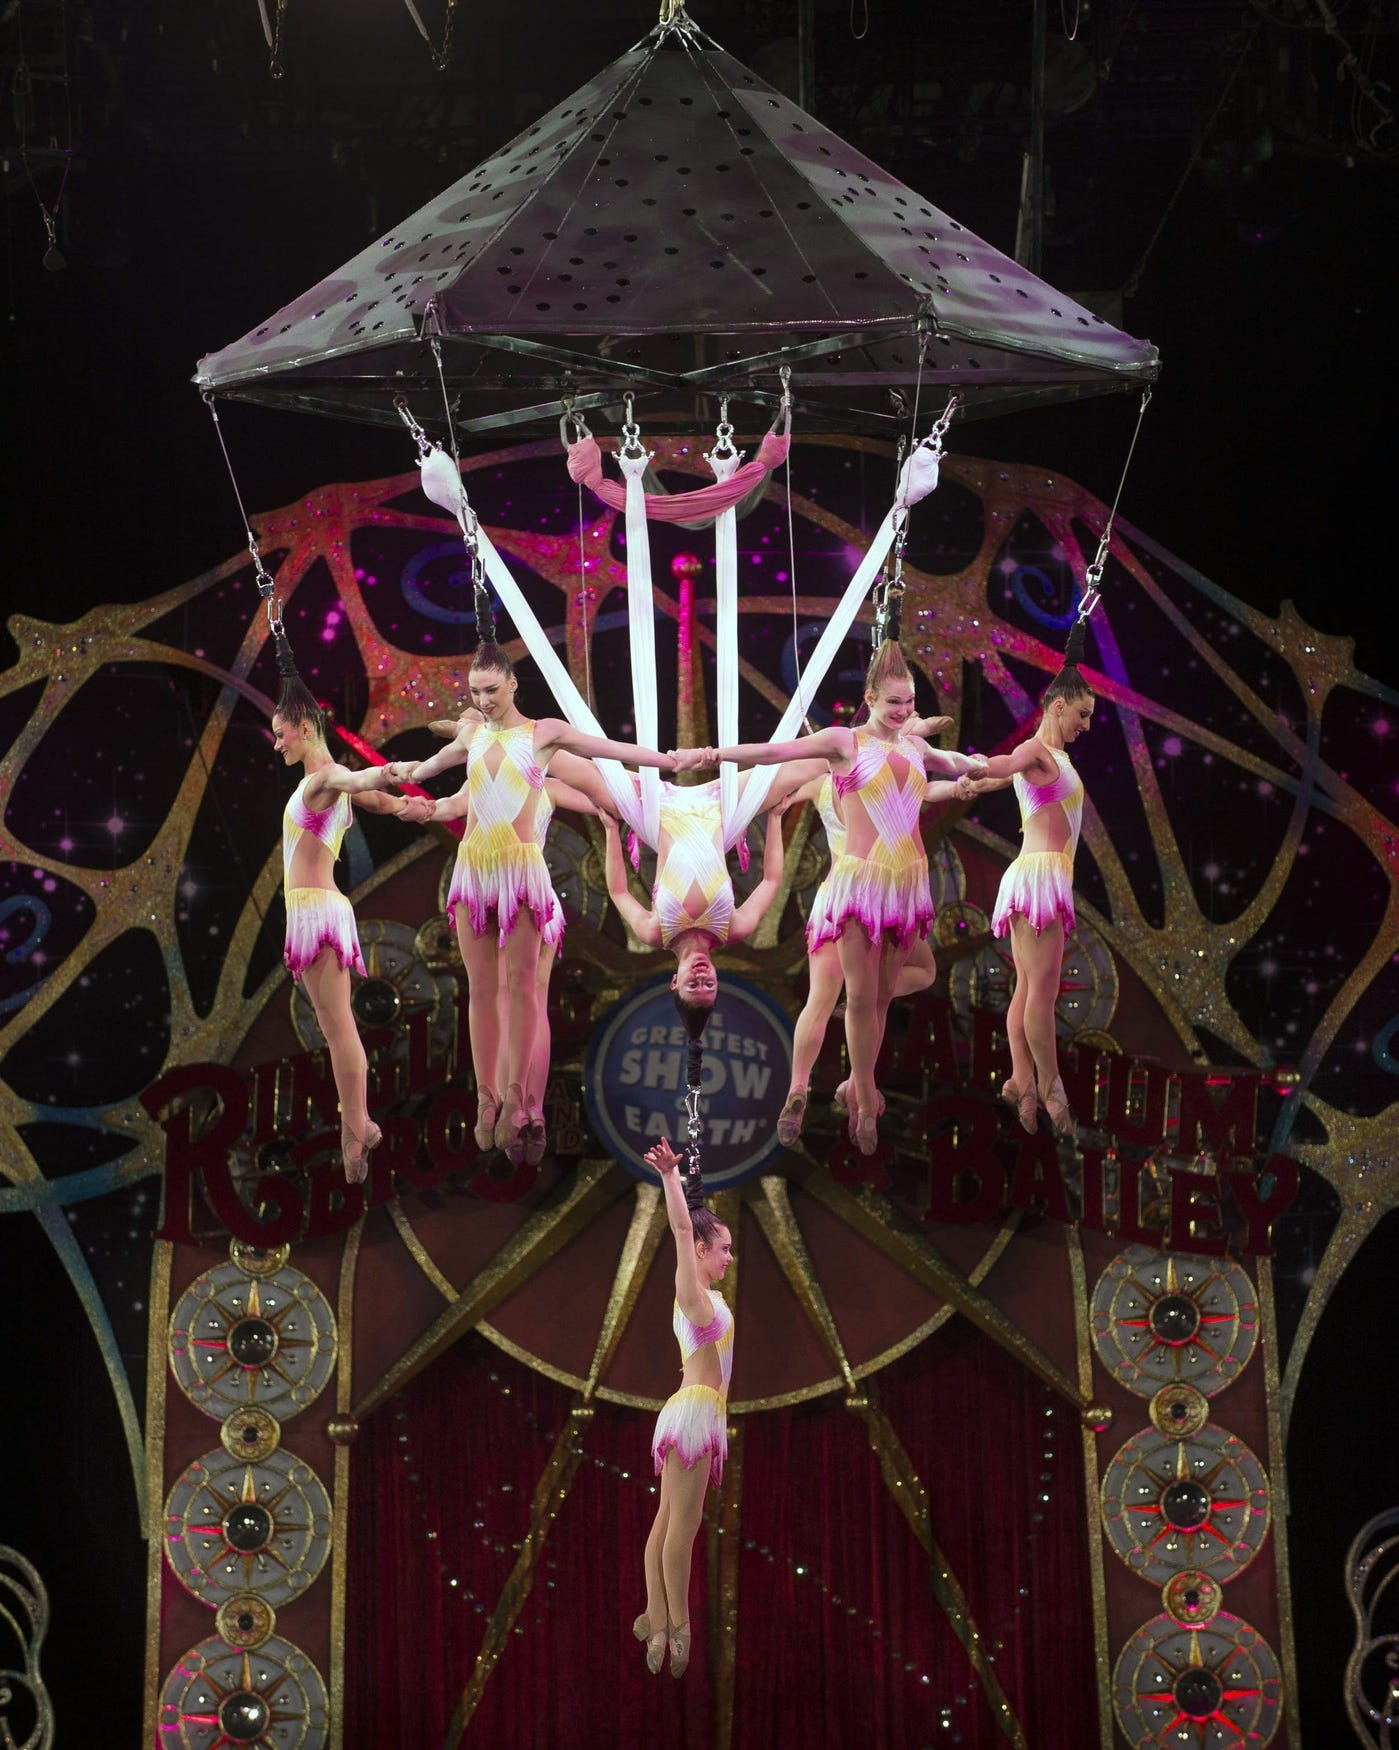 A Promotional photo showing the Lotus Blossom hair-hanging act that was in the Circus accident at the Ringling Bros. and Barnum & Bailey Legends Tour Sunday, May 4, 2014 at The Dunkin' Donuts Center in Providence.